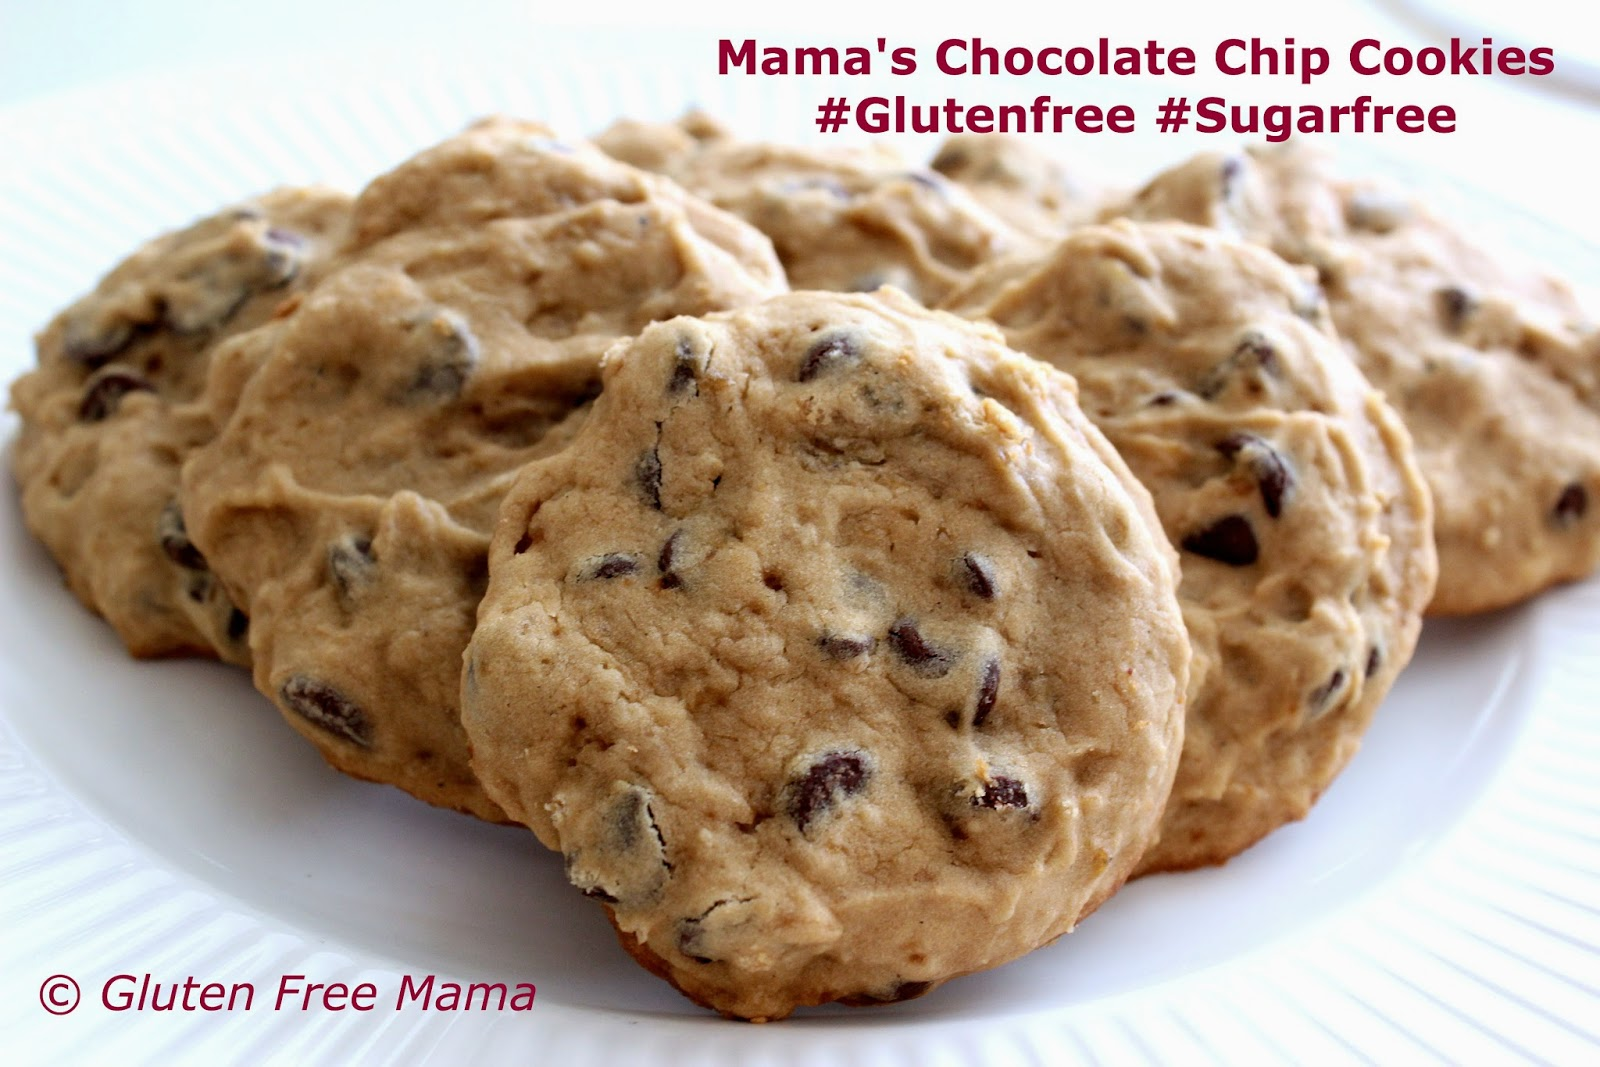 Mama's Gluten Free Chocolate Chip Cookies with Brown Rice Syrup